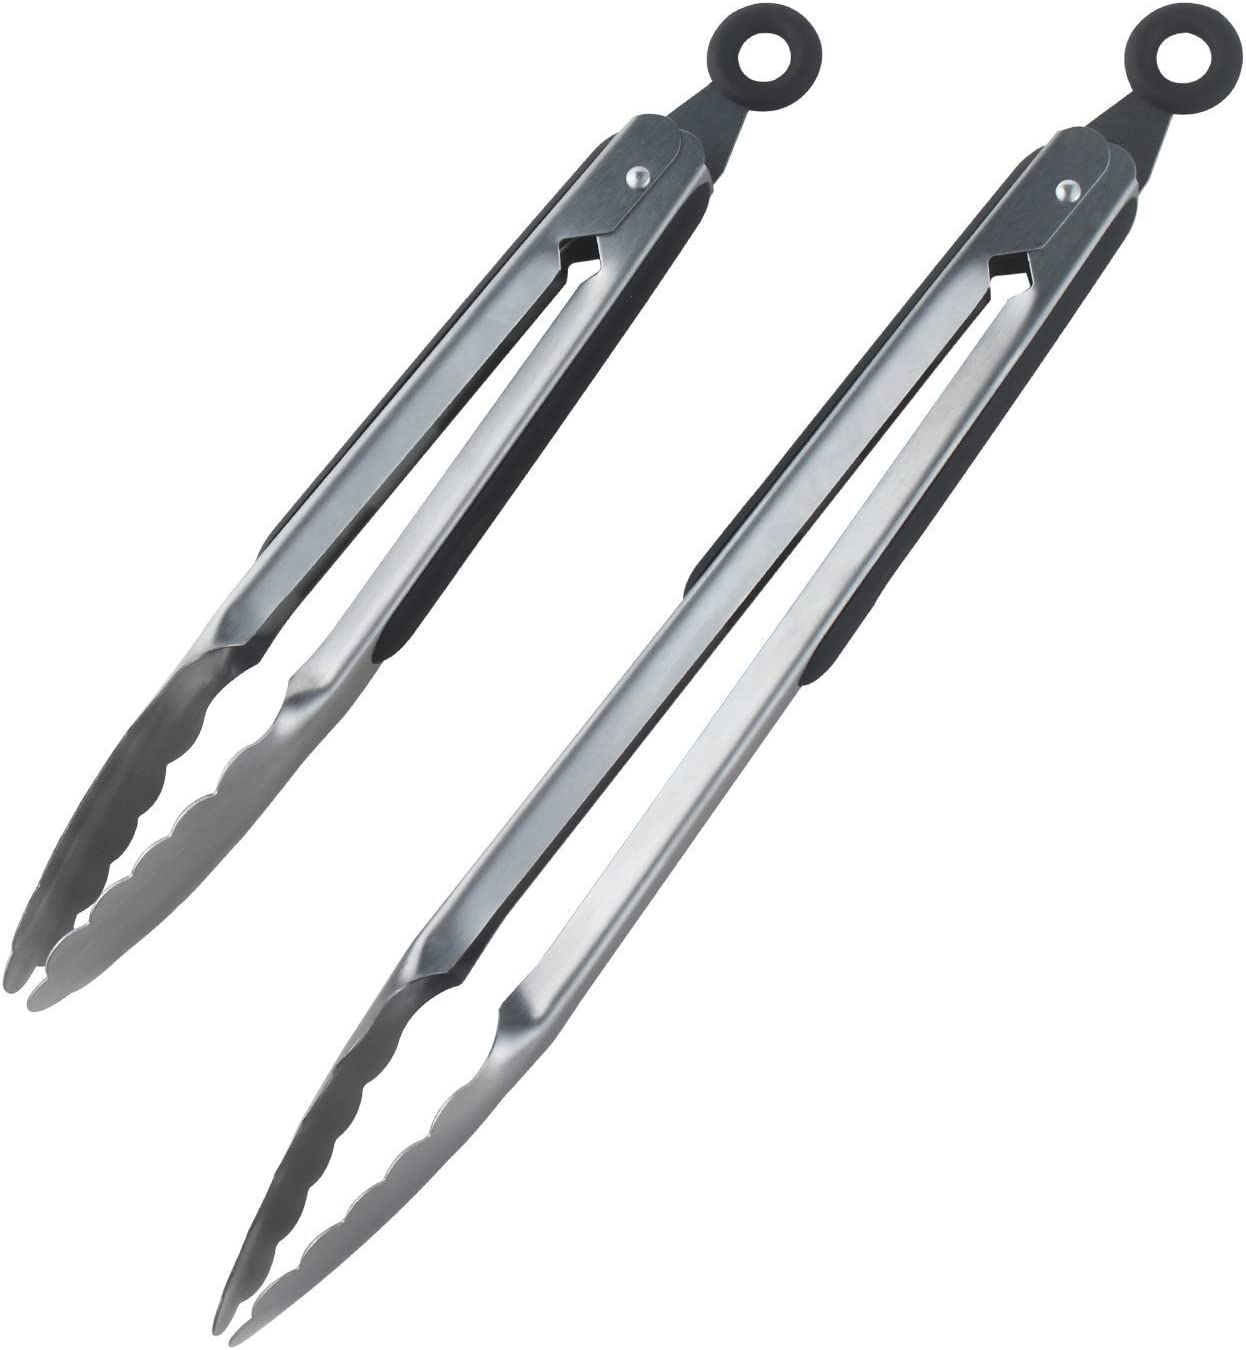 Stainless-steel Locking Kitchen Tongs,Tongji 9,and 12 Inch Premium Sturdy Grips,Set of 2